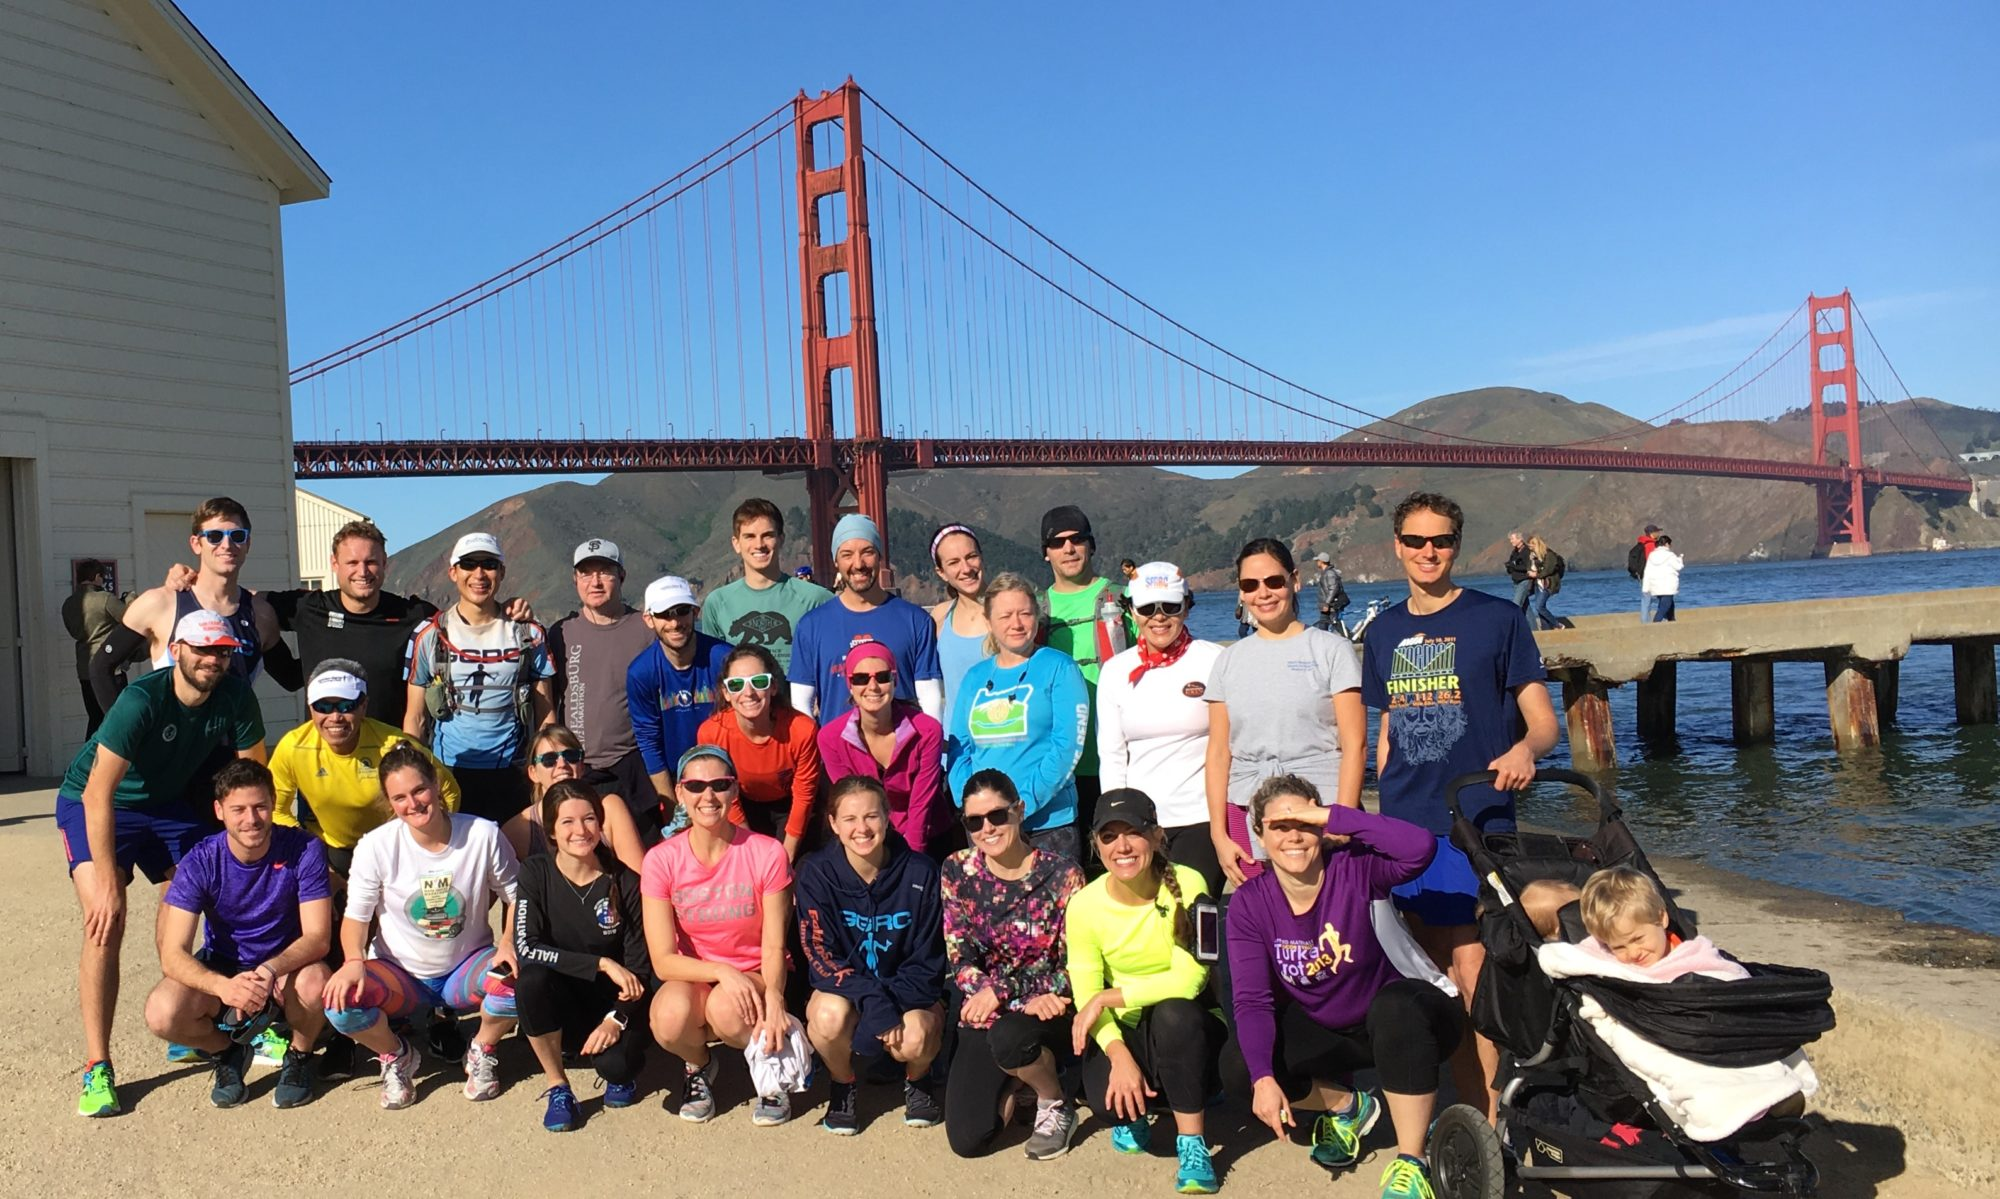 Golden Gate Running Club (GGRC)